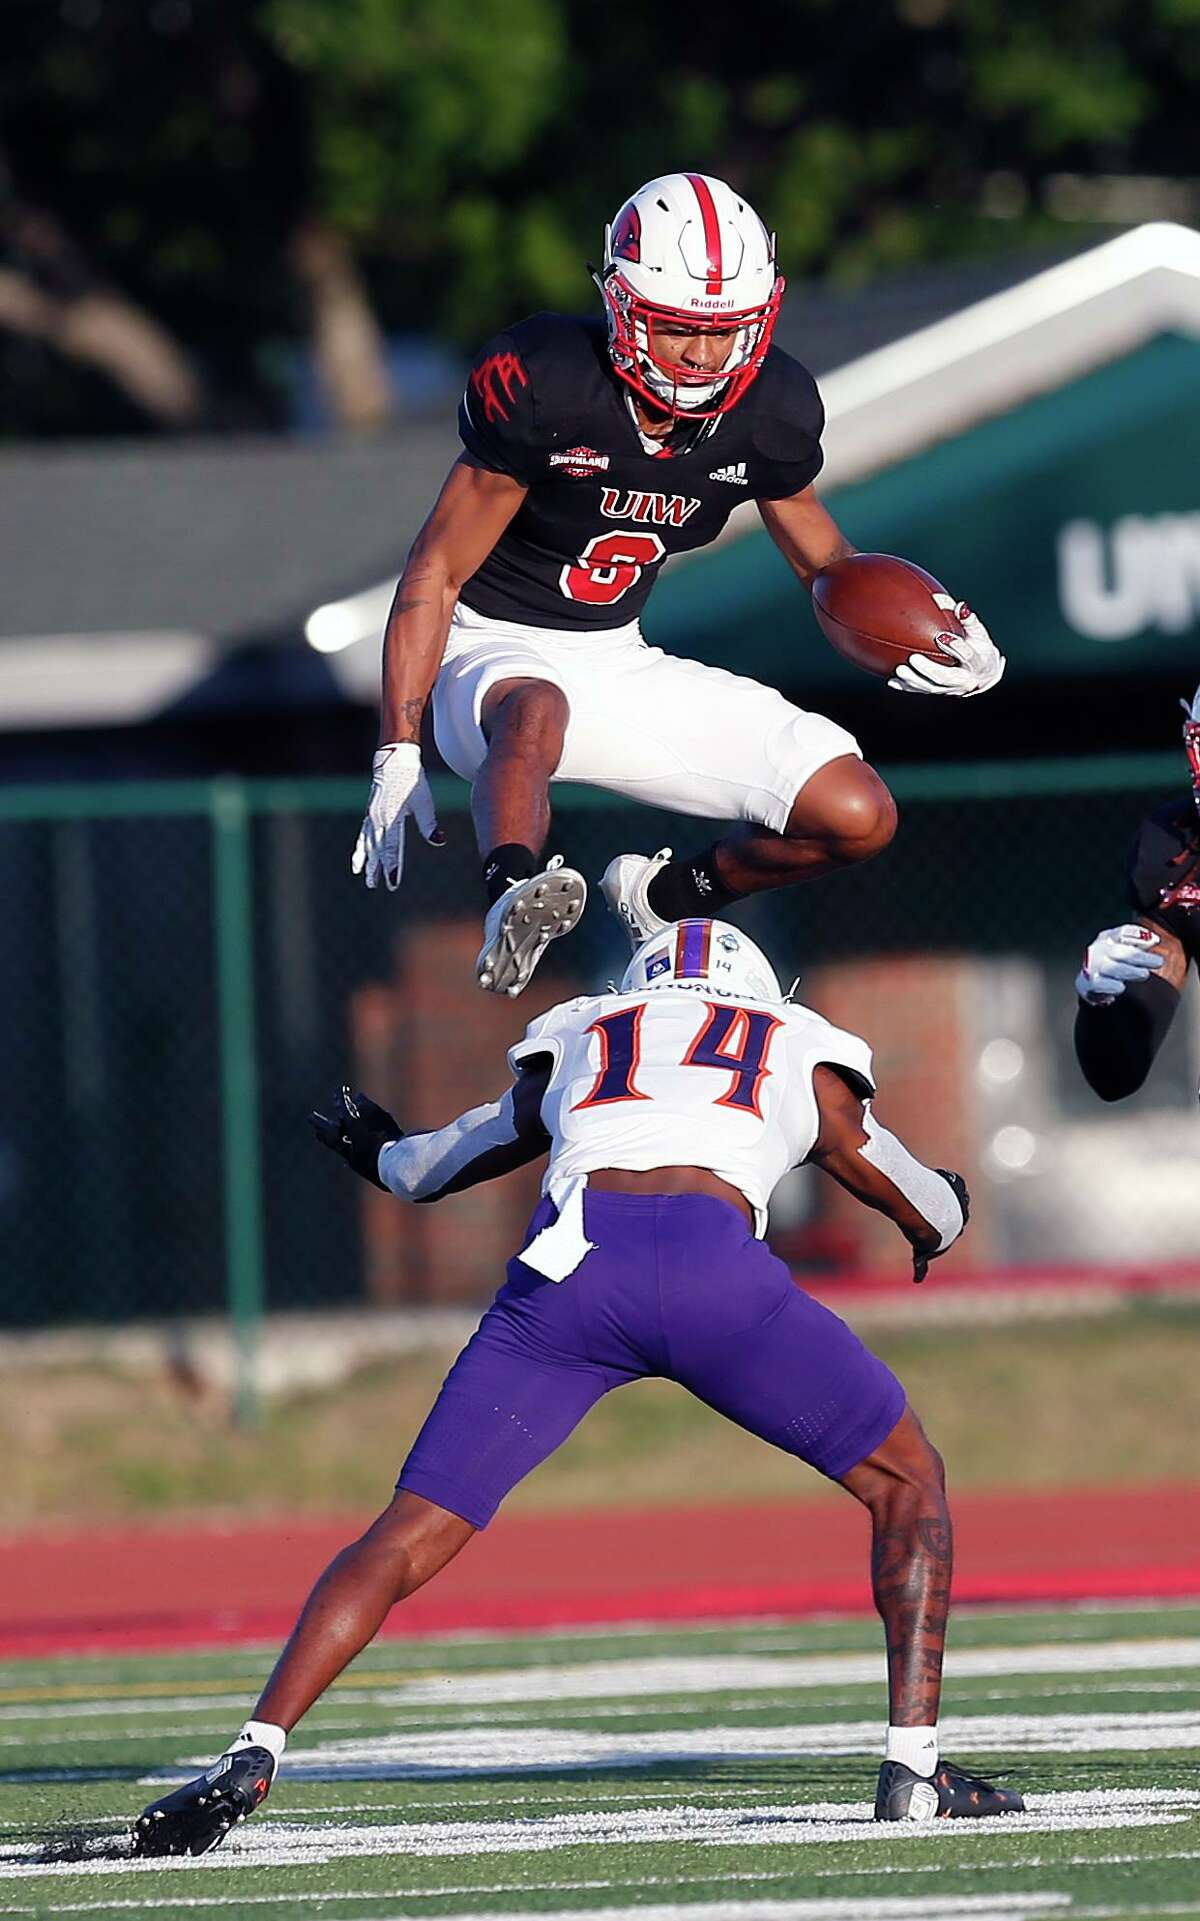 UIW Tre Wolf #9 leaps over Northwestern State Waylon Washington after a reception in first quarter. College Football UIW vs. Northwestern State on Saturday, April 10,2021 at UIW.